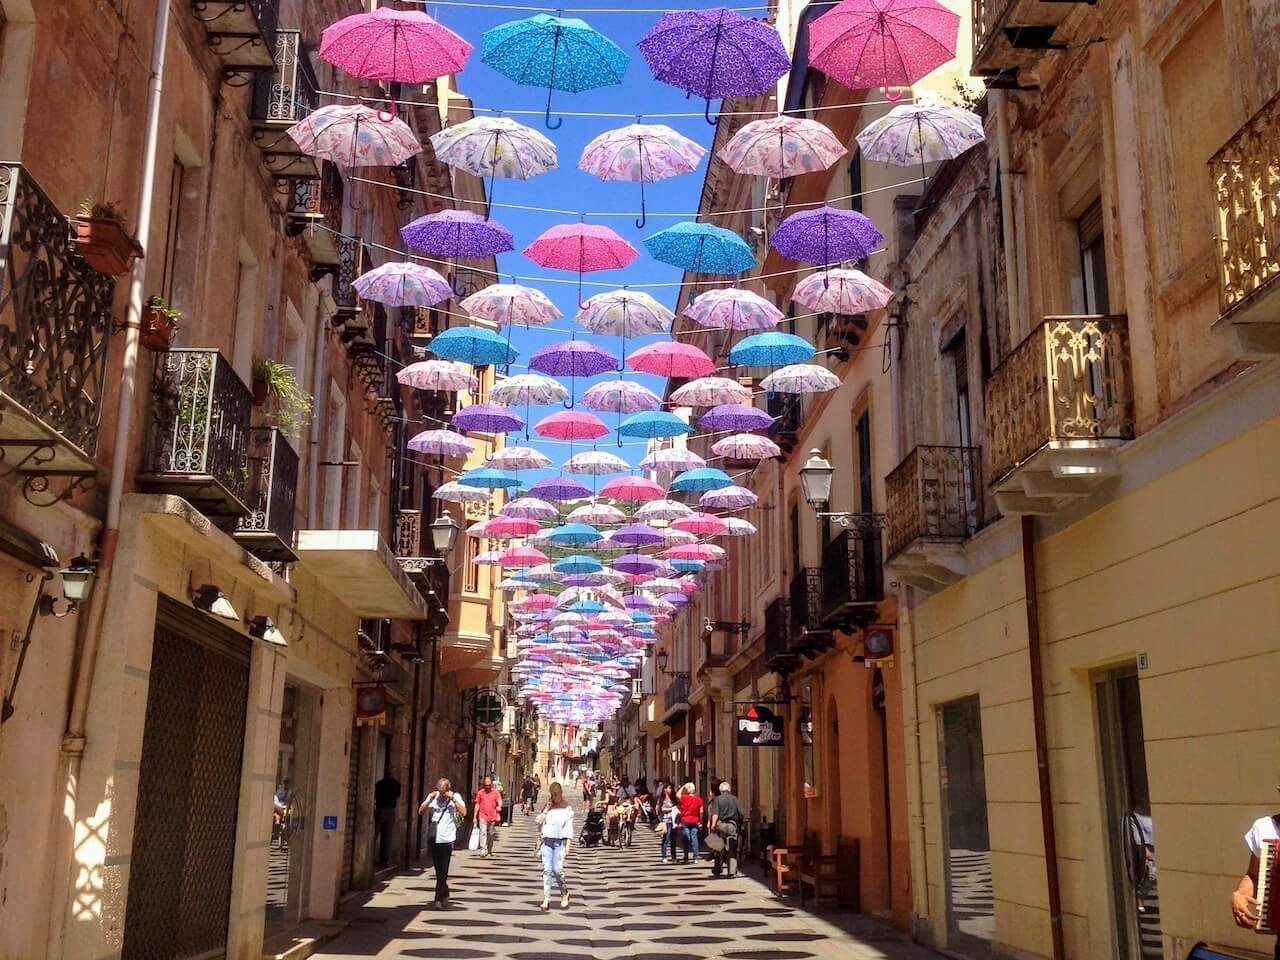 Best Umbrella Streets Around the World - According to Travel Bloggers #bestumbrella